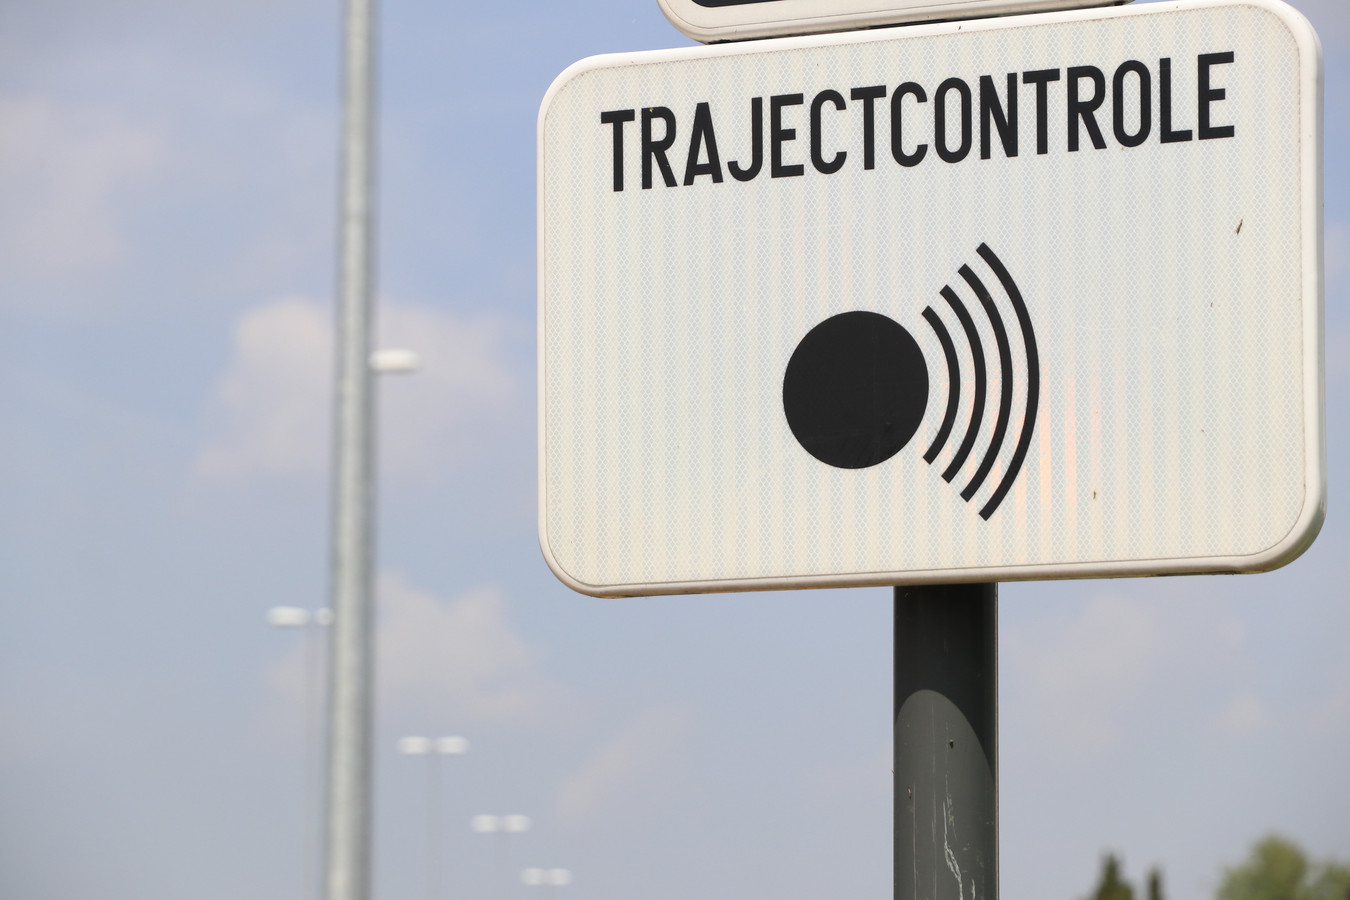 trajectcontrole E17